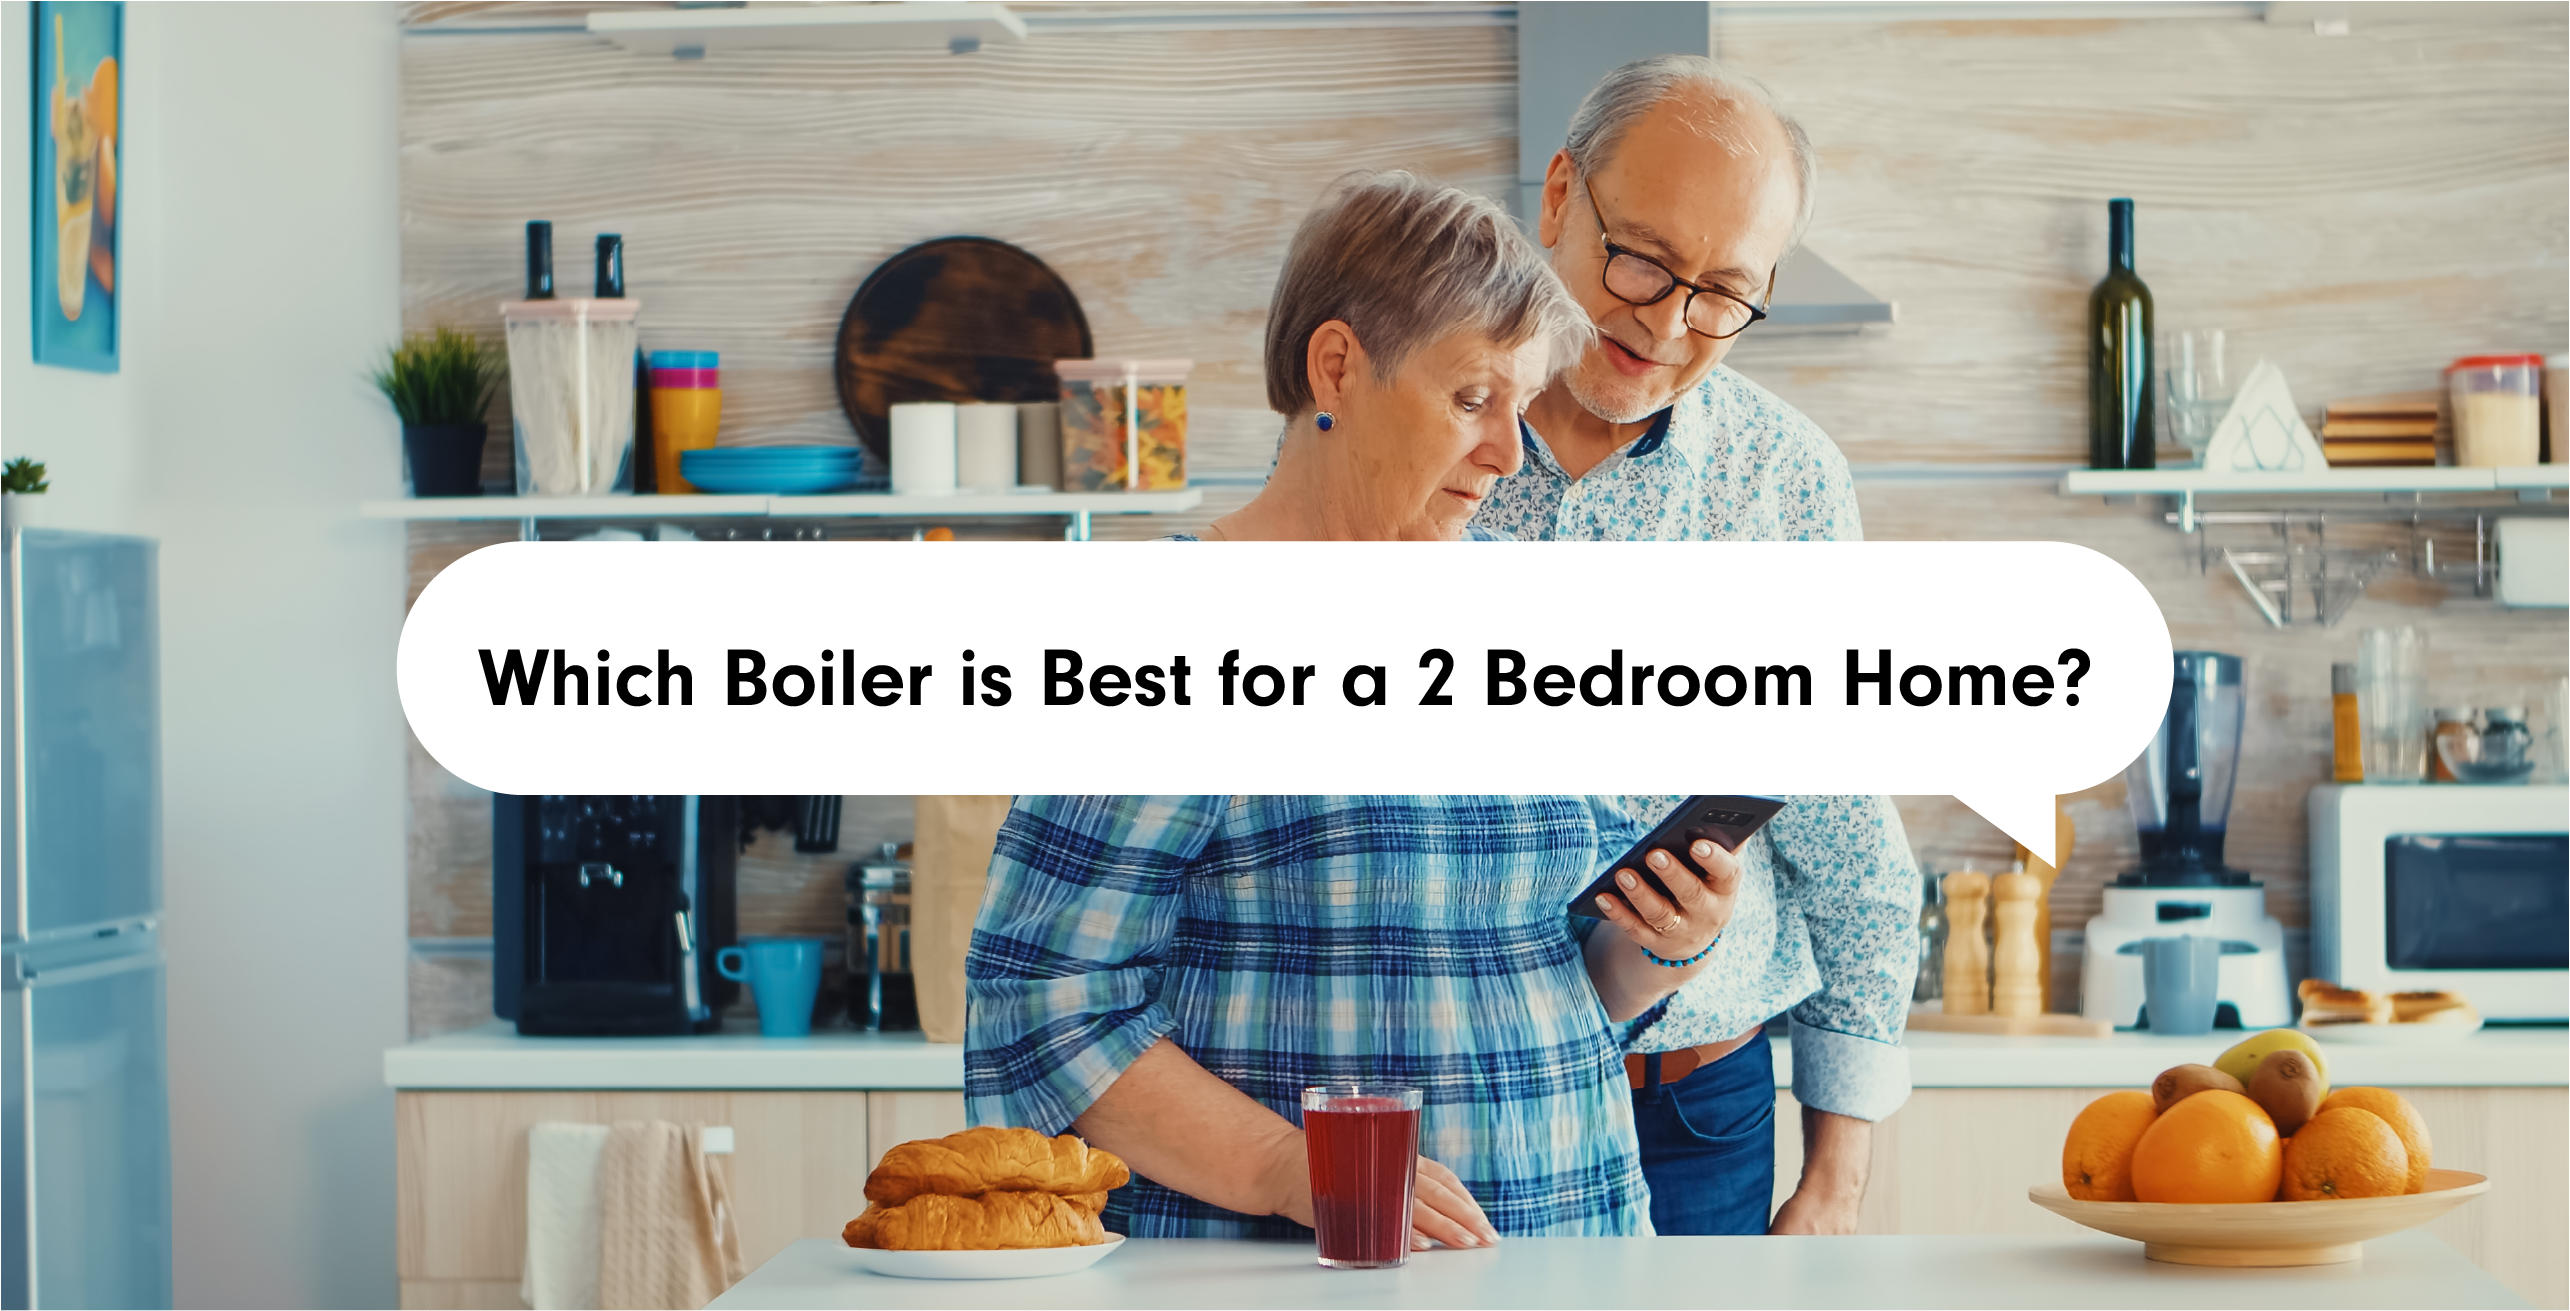 Which Boiler is Best for a 2 Bedroom Home?